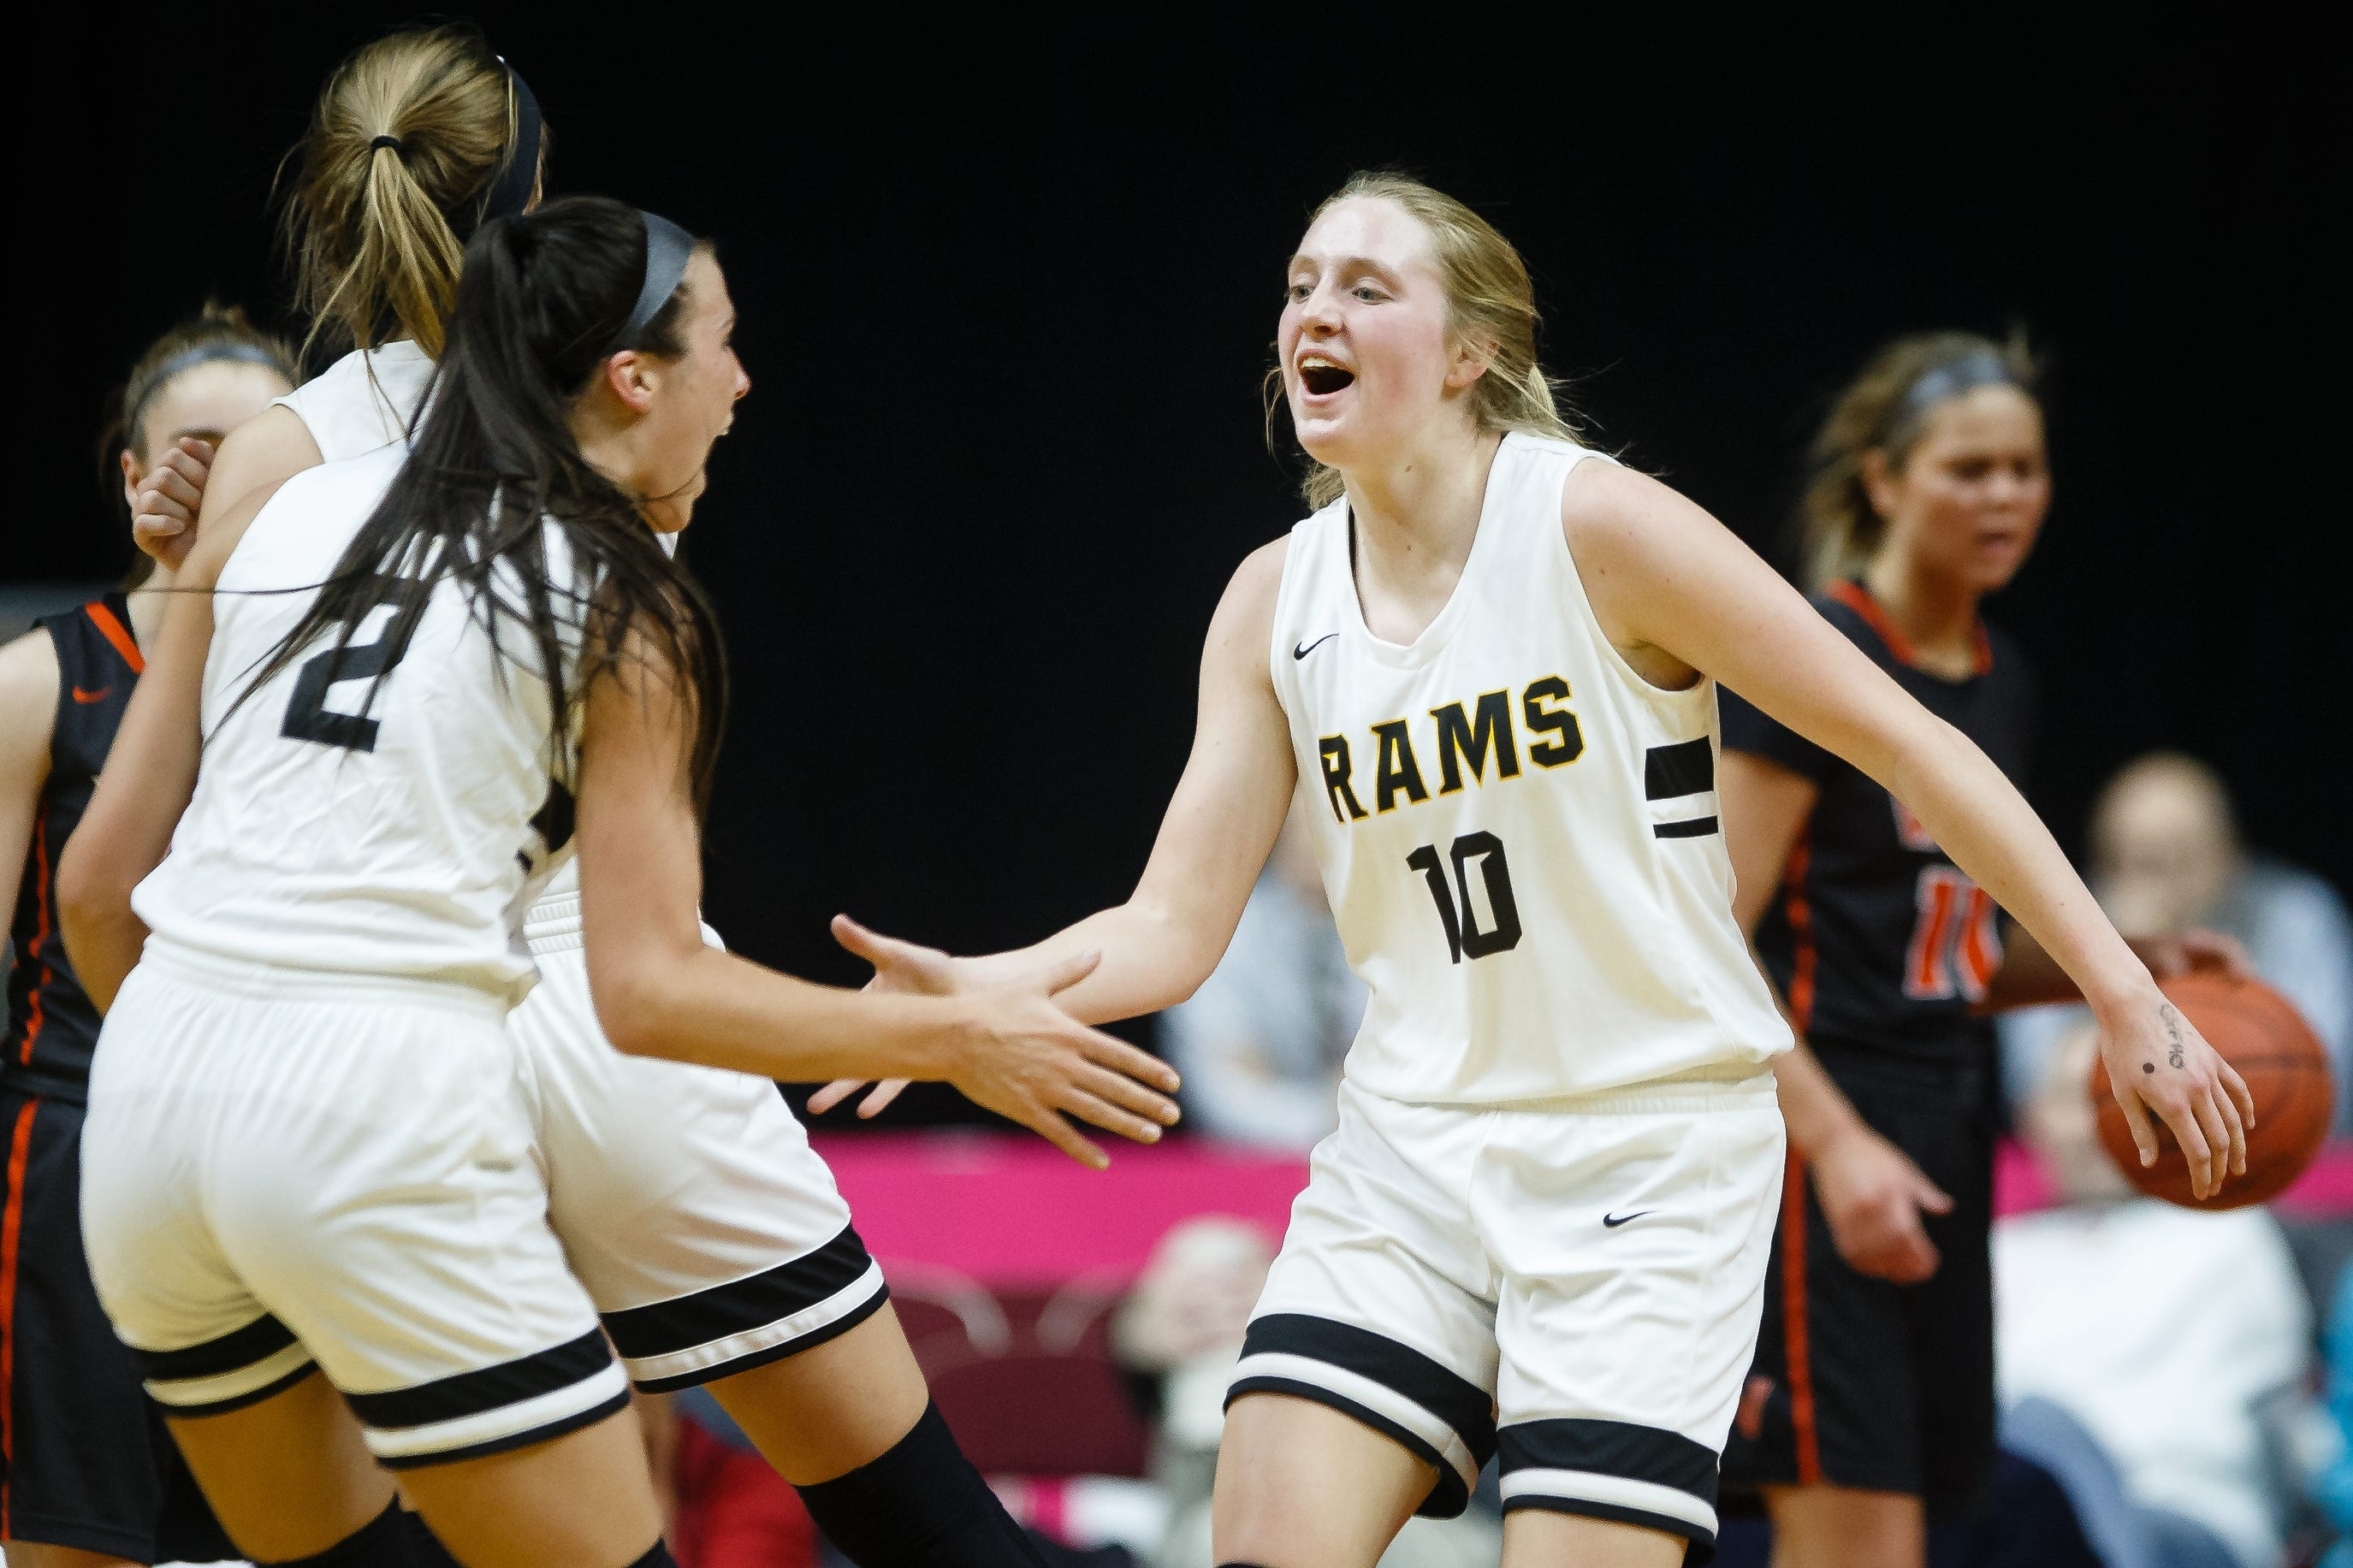 Southeast Polk's Grace Larkins (10) high-fives Liza Sutten (2) after knocking down a three during a Class 5A state basketball championship game in March.